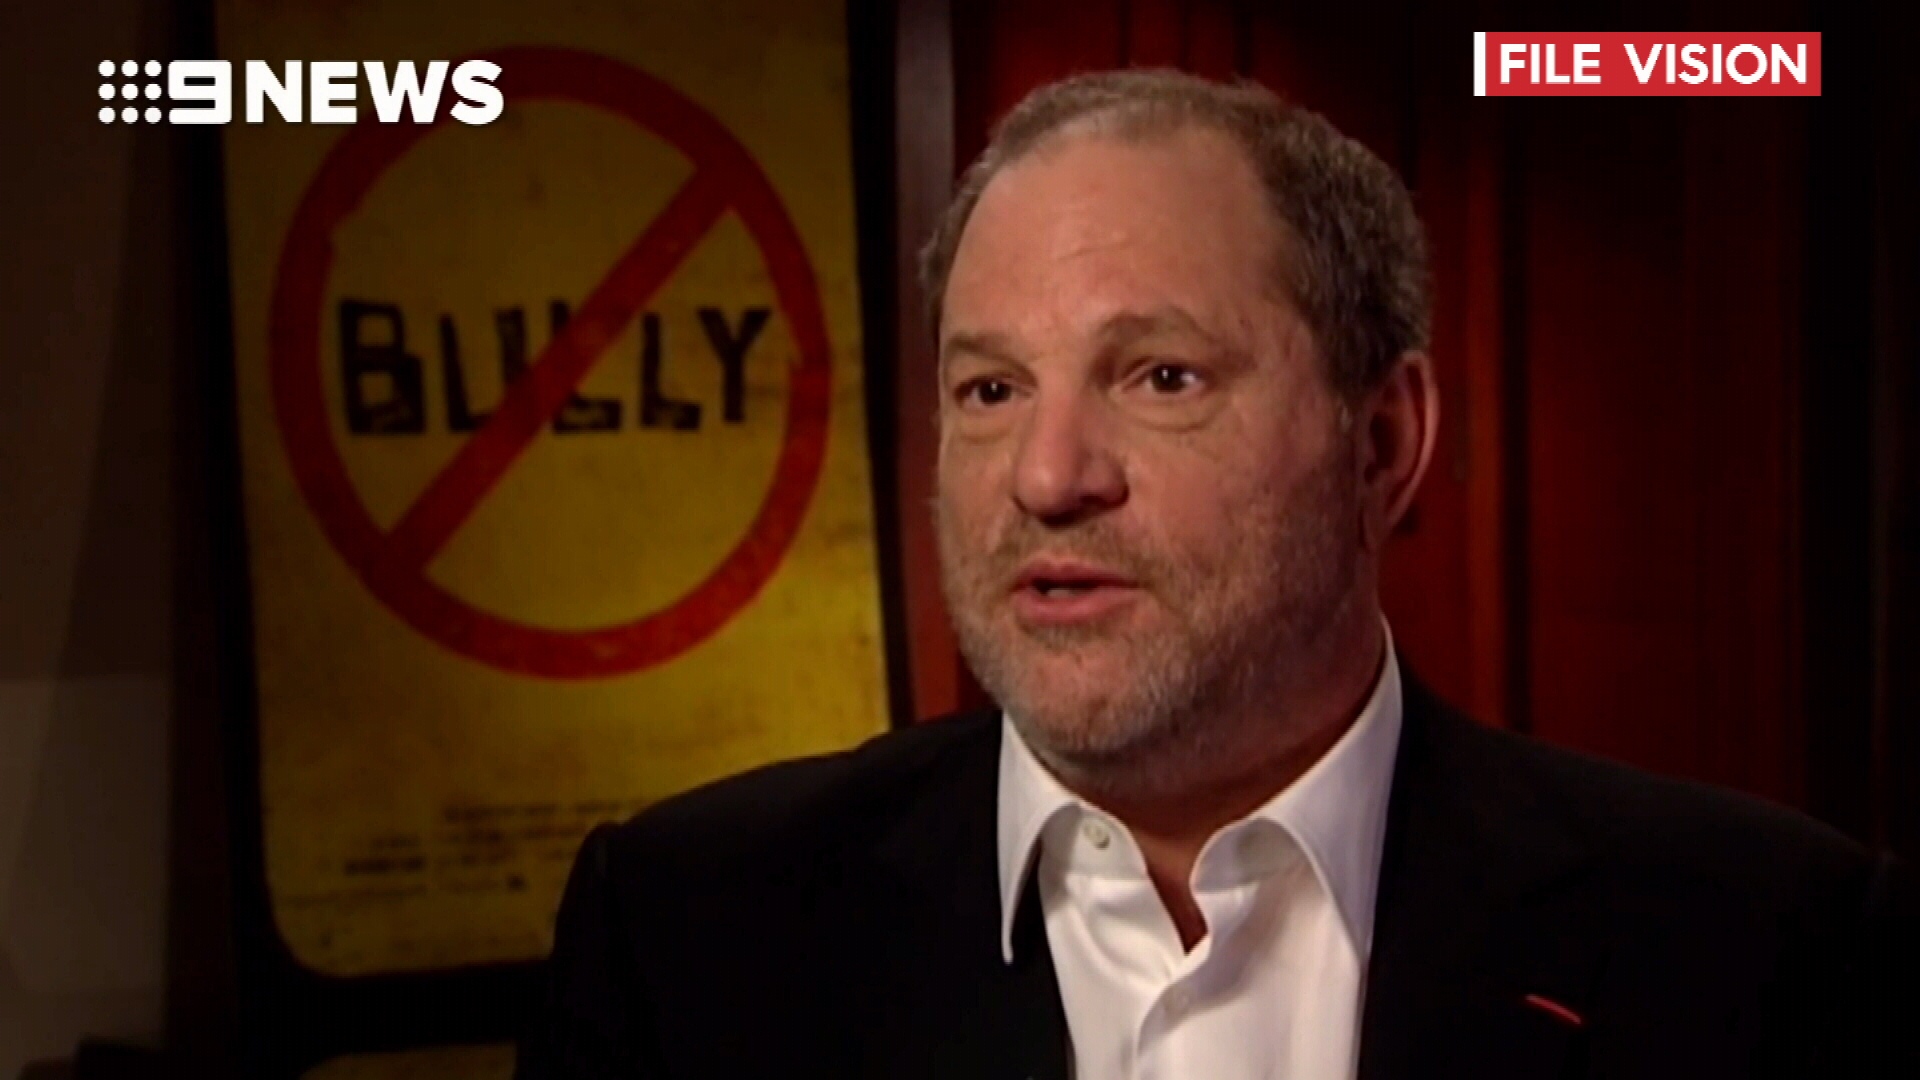 Harvey Weinstein: 'I've always hated injustice'